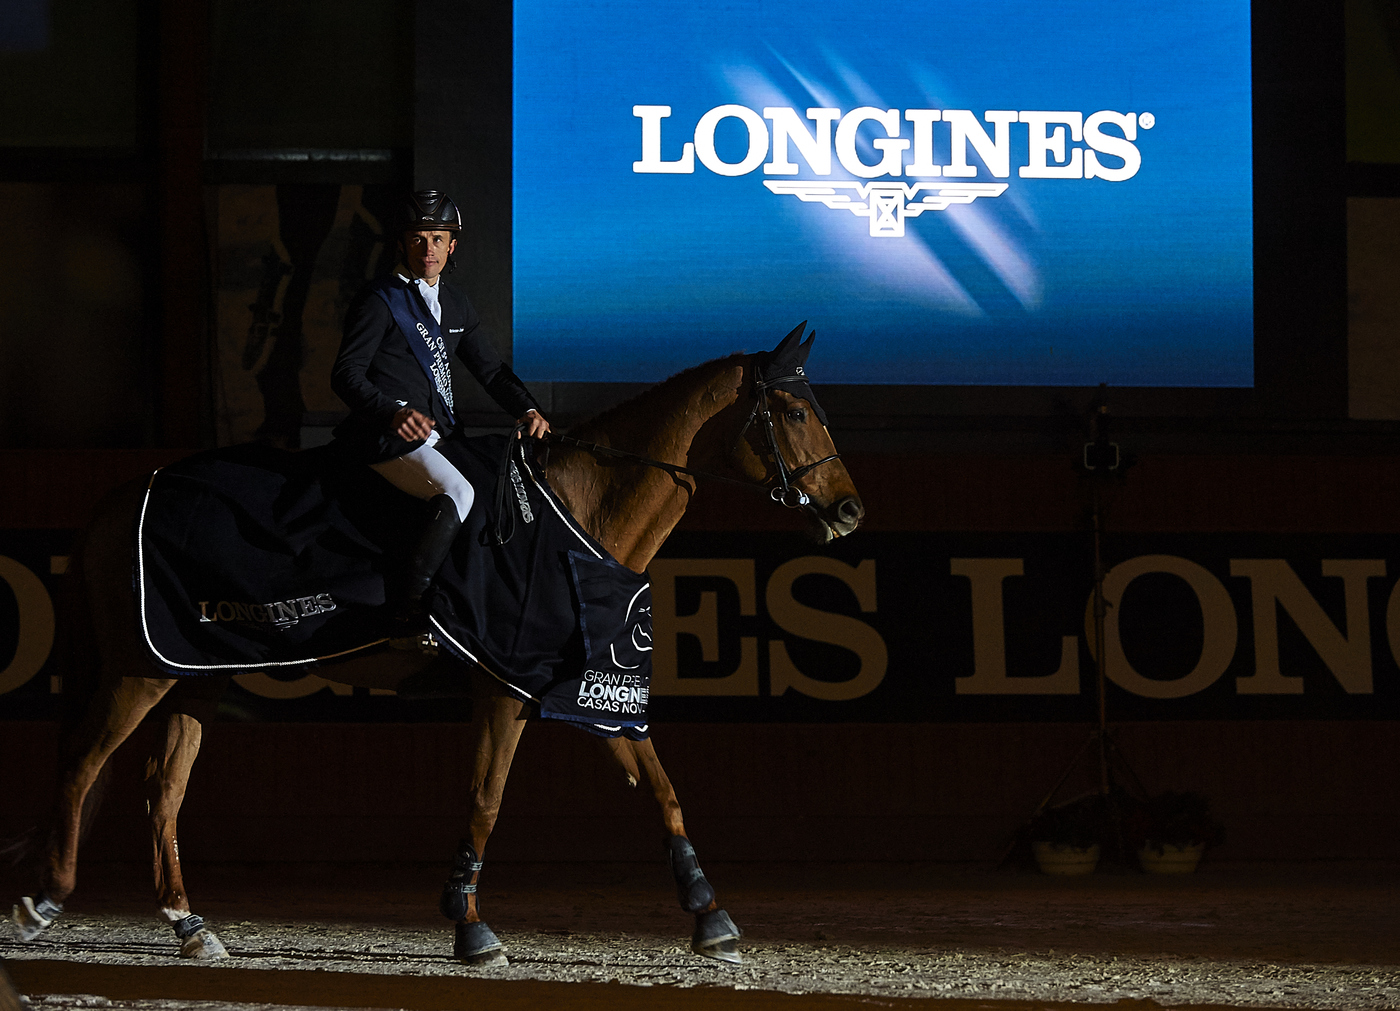 Longines Show Jumping Event: Superb victory of Leopold van Asten riding VDL Groep Zidane at the Longines Grand Prix of CSI A Coruña's winter edition 4